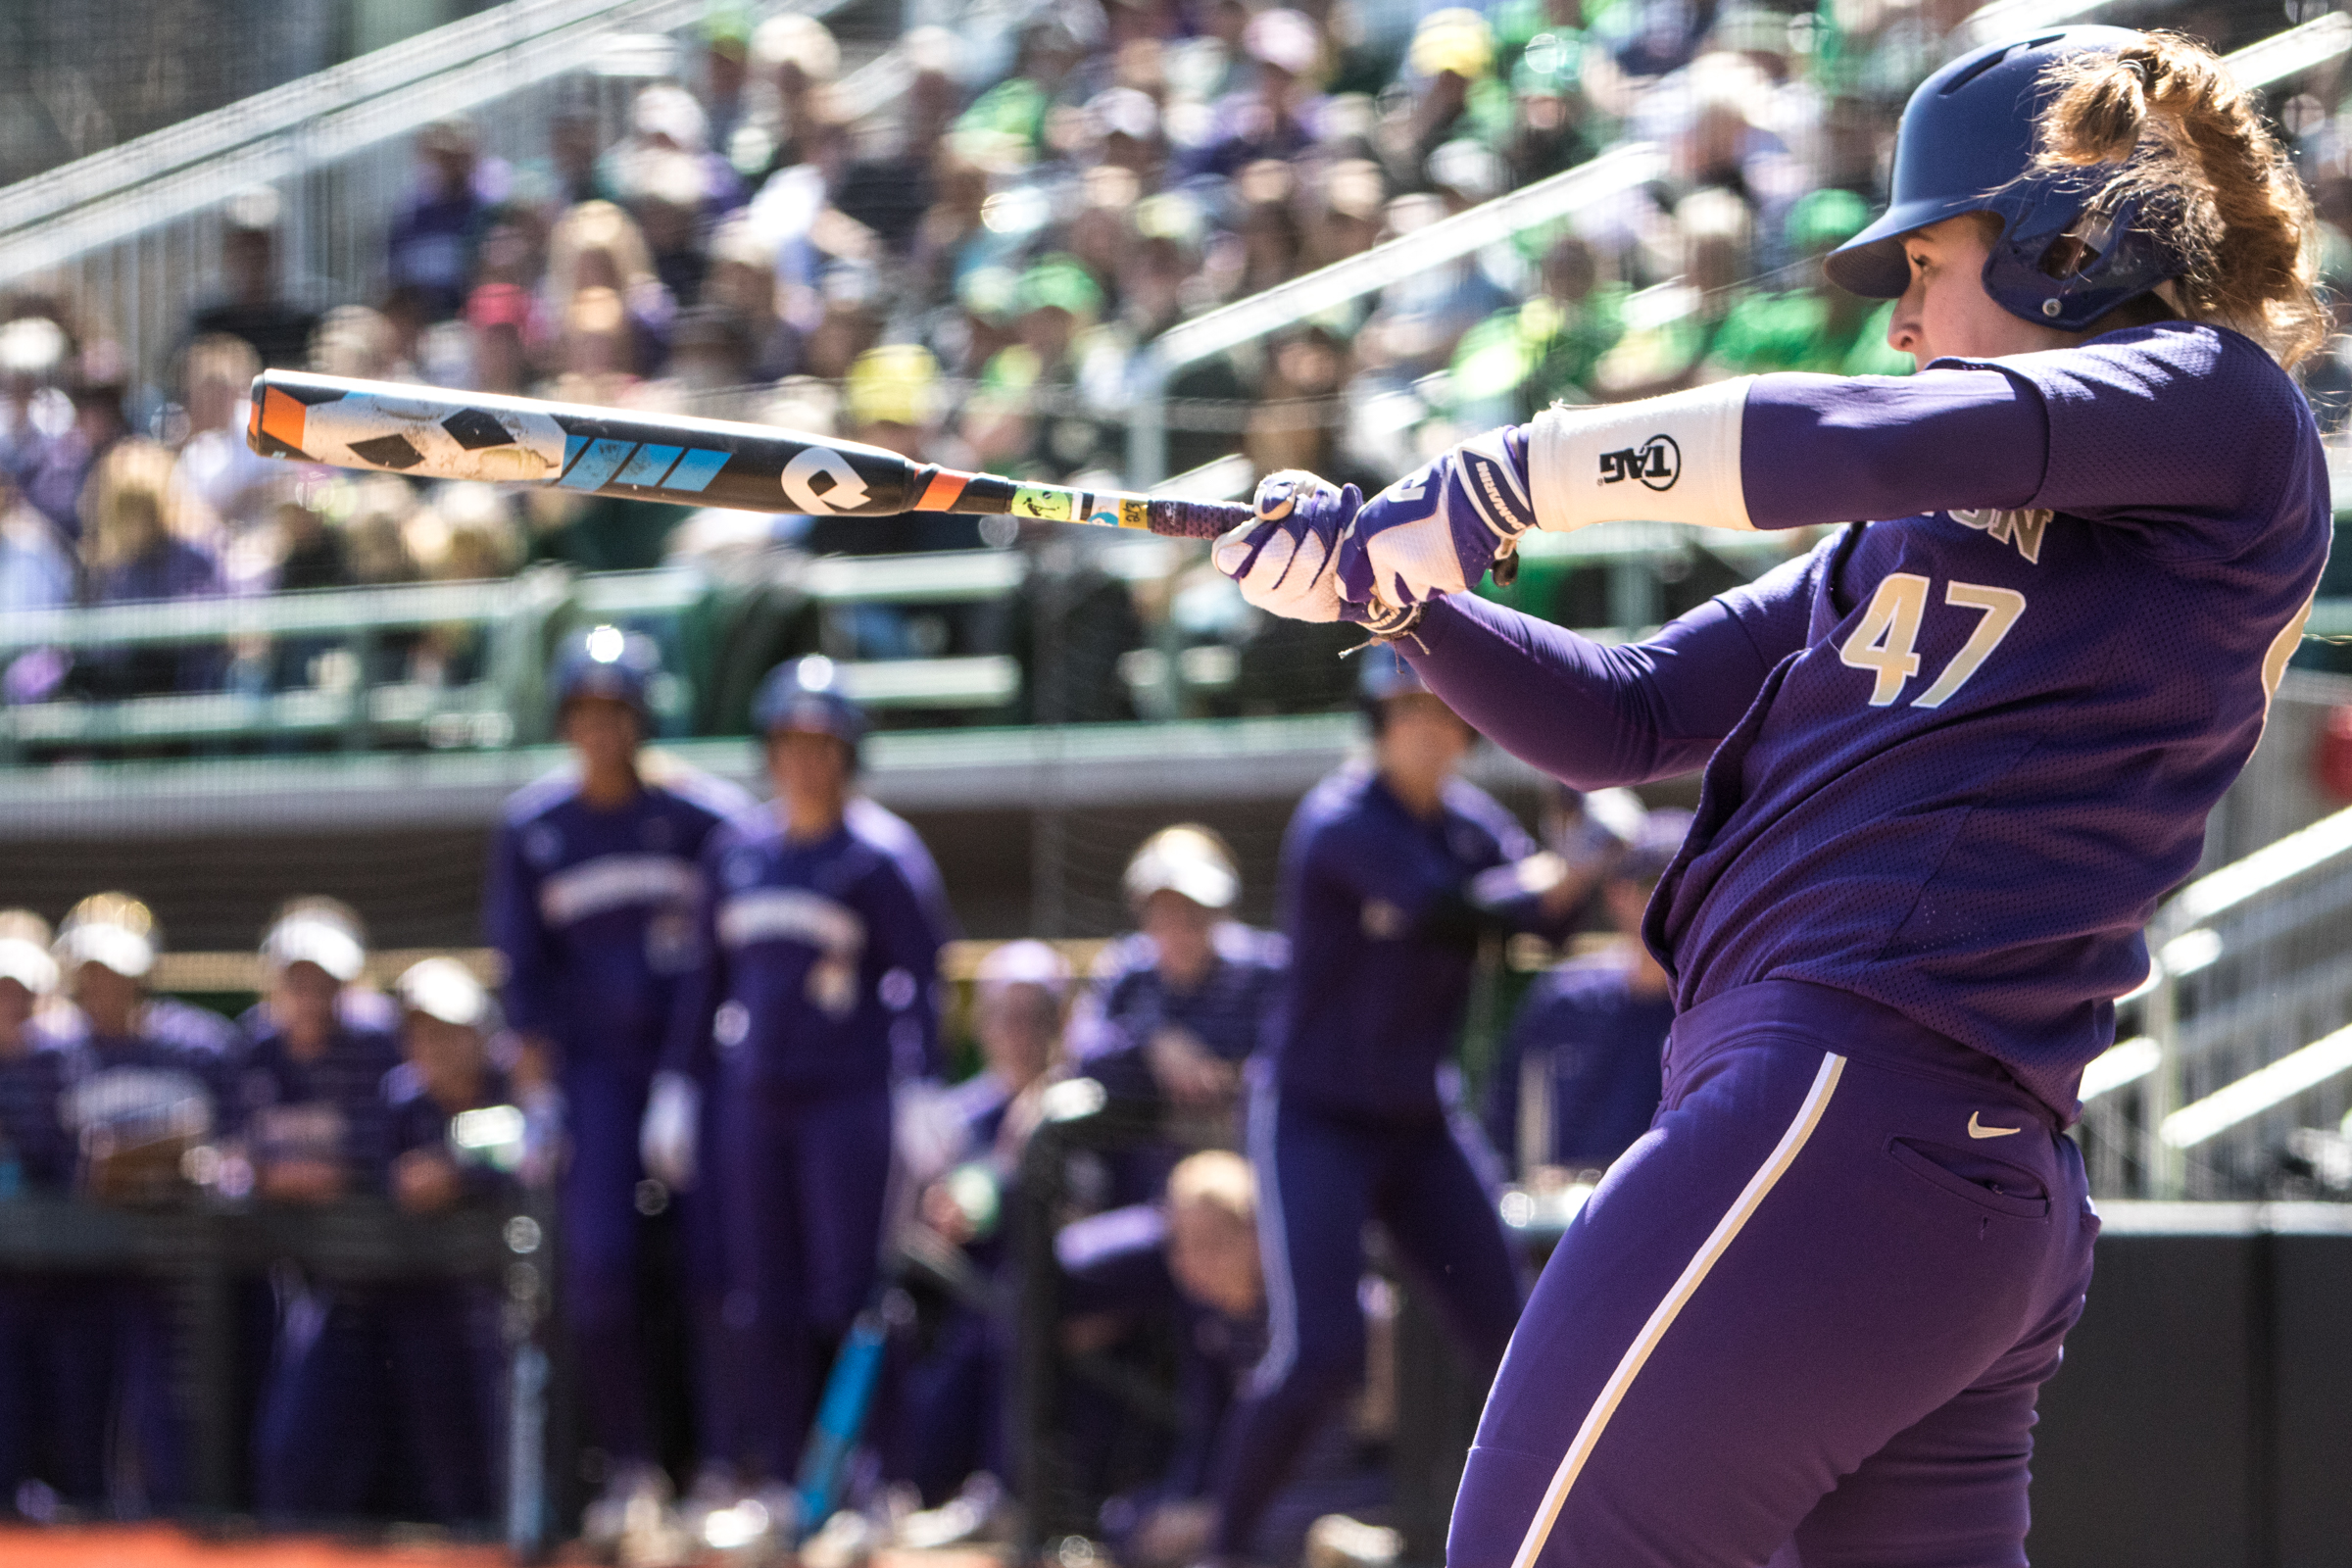 Washington Huskies catcher Morganne Flores (#47) completes her swing on her second two-run double during the ninth inning. In the final game of a three-game series, the University of Washington Huskies defeated the Oregon Ducks 5-3.  The Ducks led through the bottom of the 7th inning, but Washington's Morganne Flores (#47) tied it up with a two-run double.  Flores drove in two more runs in the 9th to take the lead.  Photo by Austin Hicks, Oregon News Lab